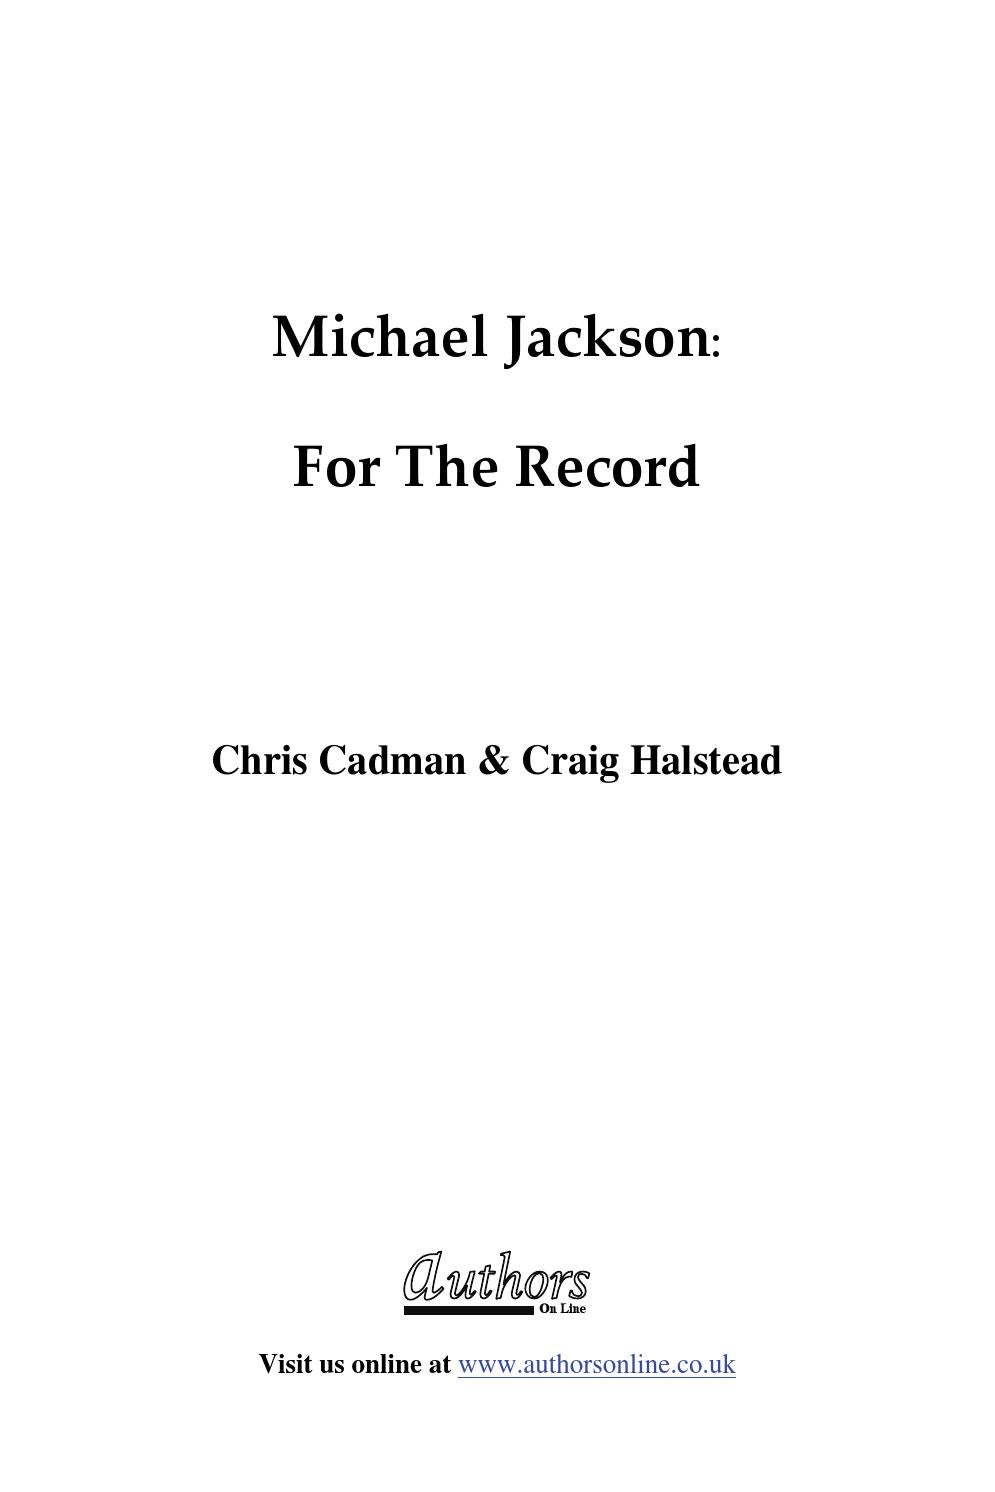 For the record by MJ - Collection - issuu